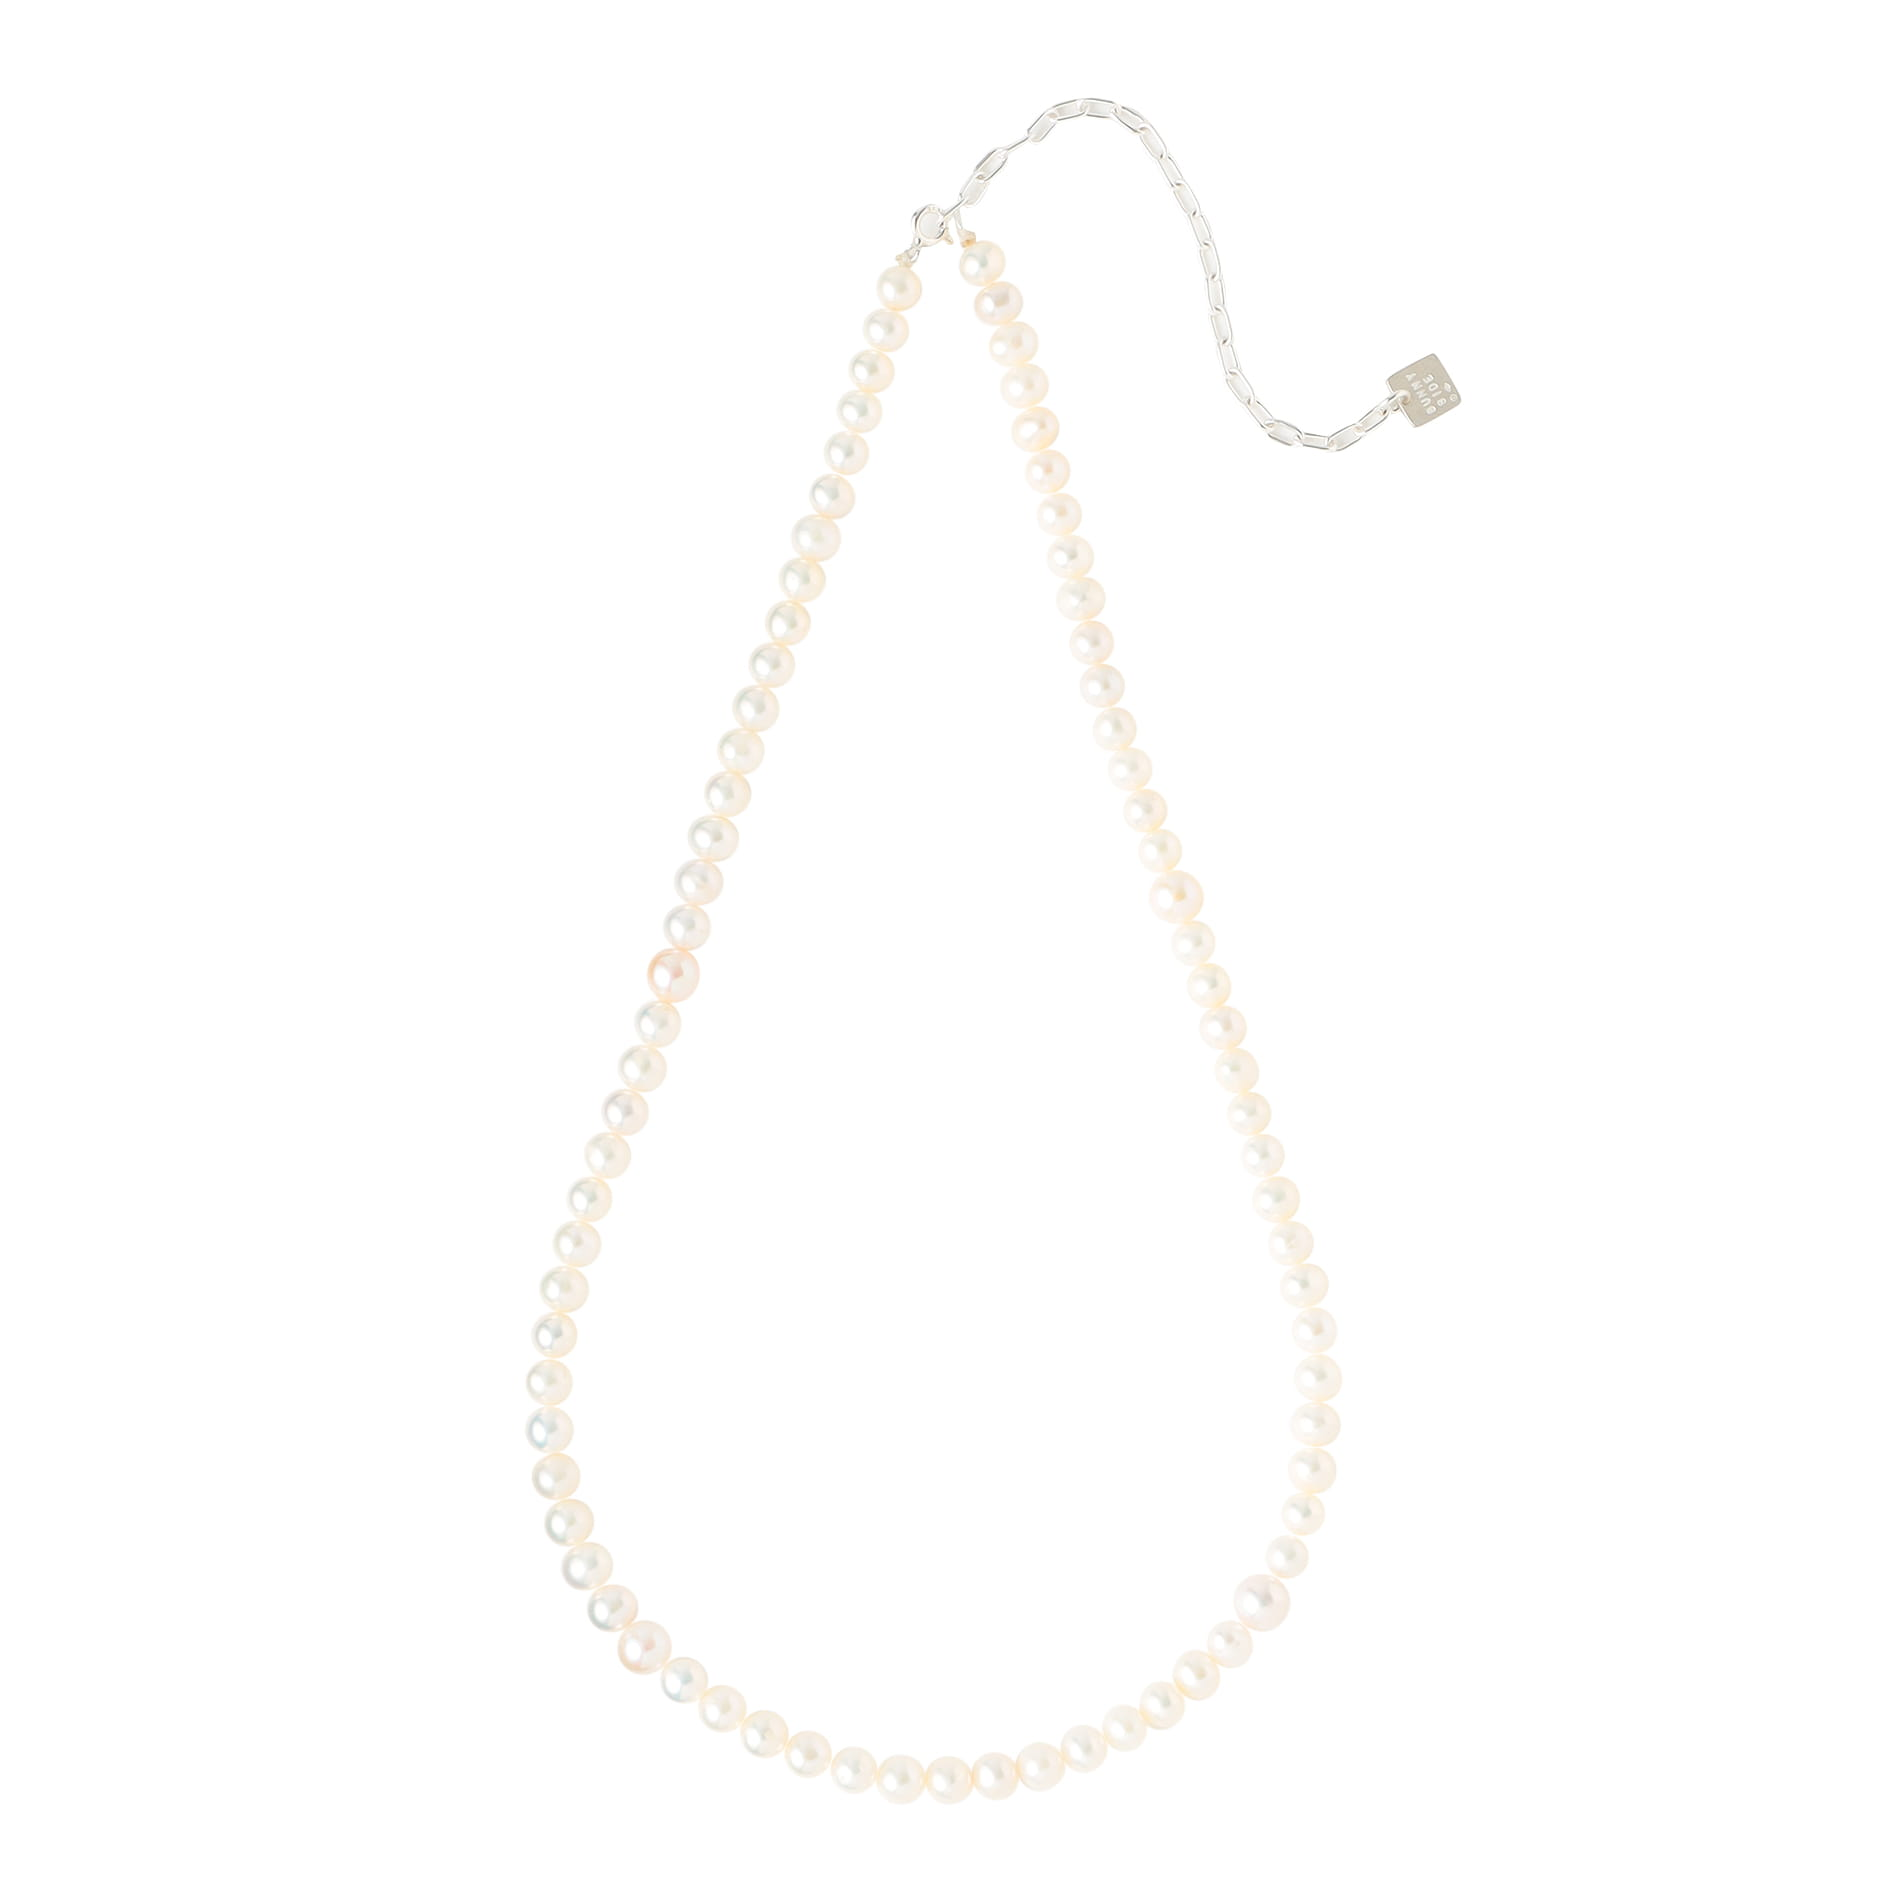 【on the sunny side of the street】ネックレス 6mm Pearls Necklace 010-352N